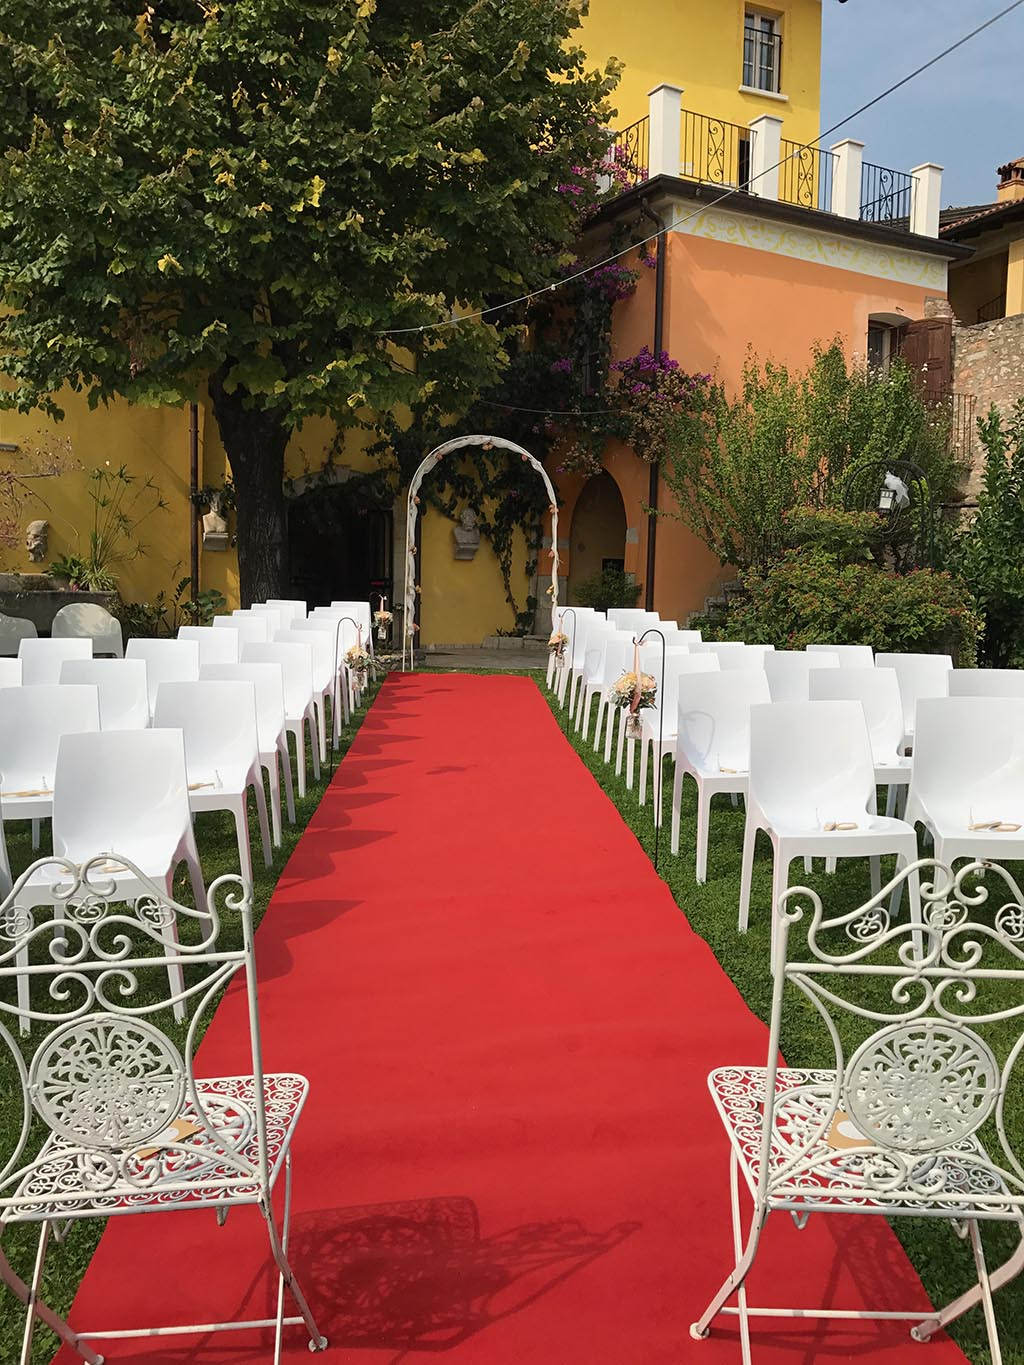 Ceremony in the garden with a red carpet